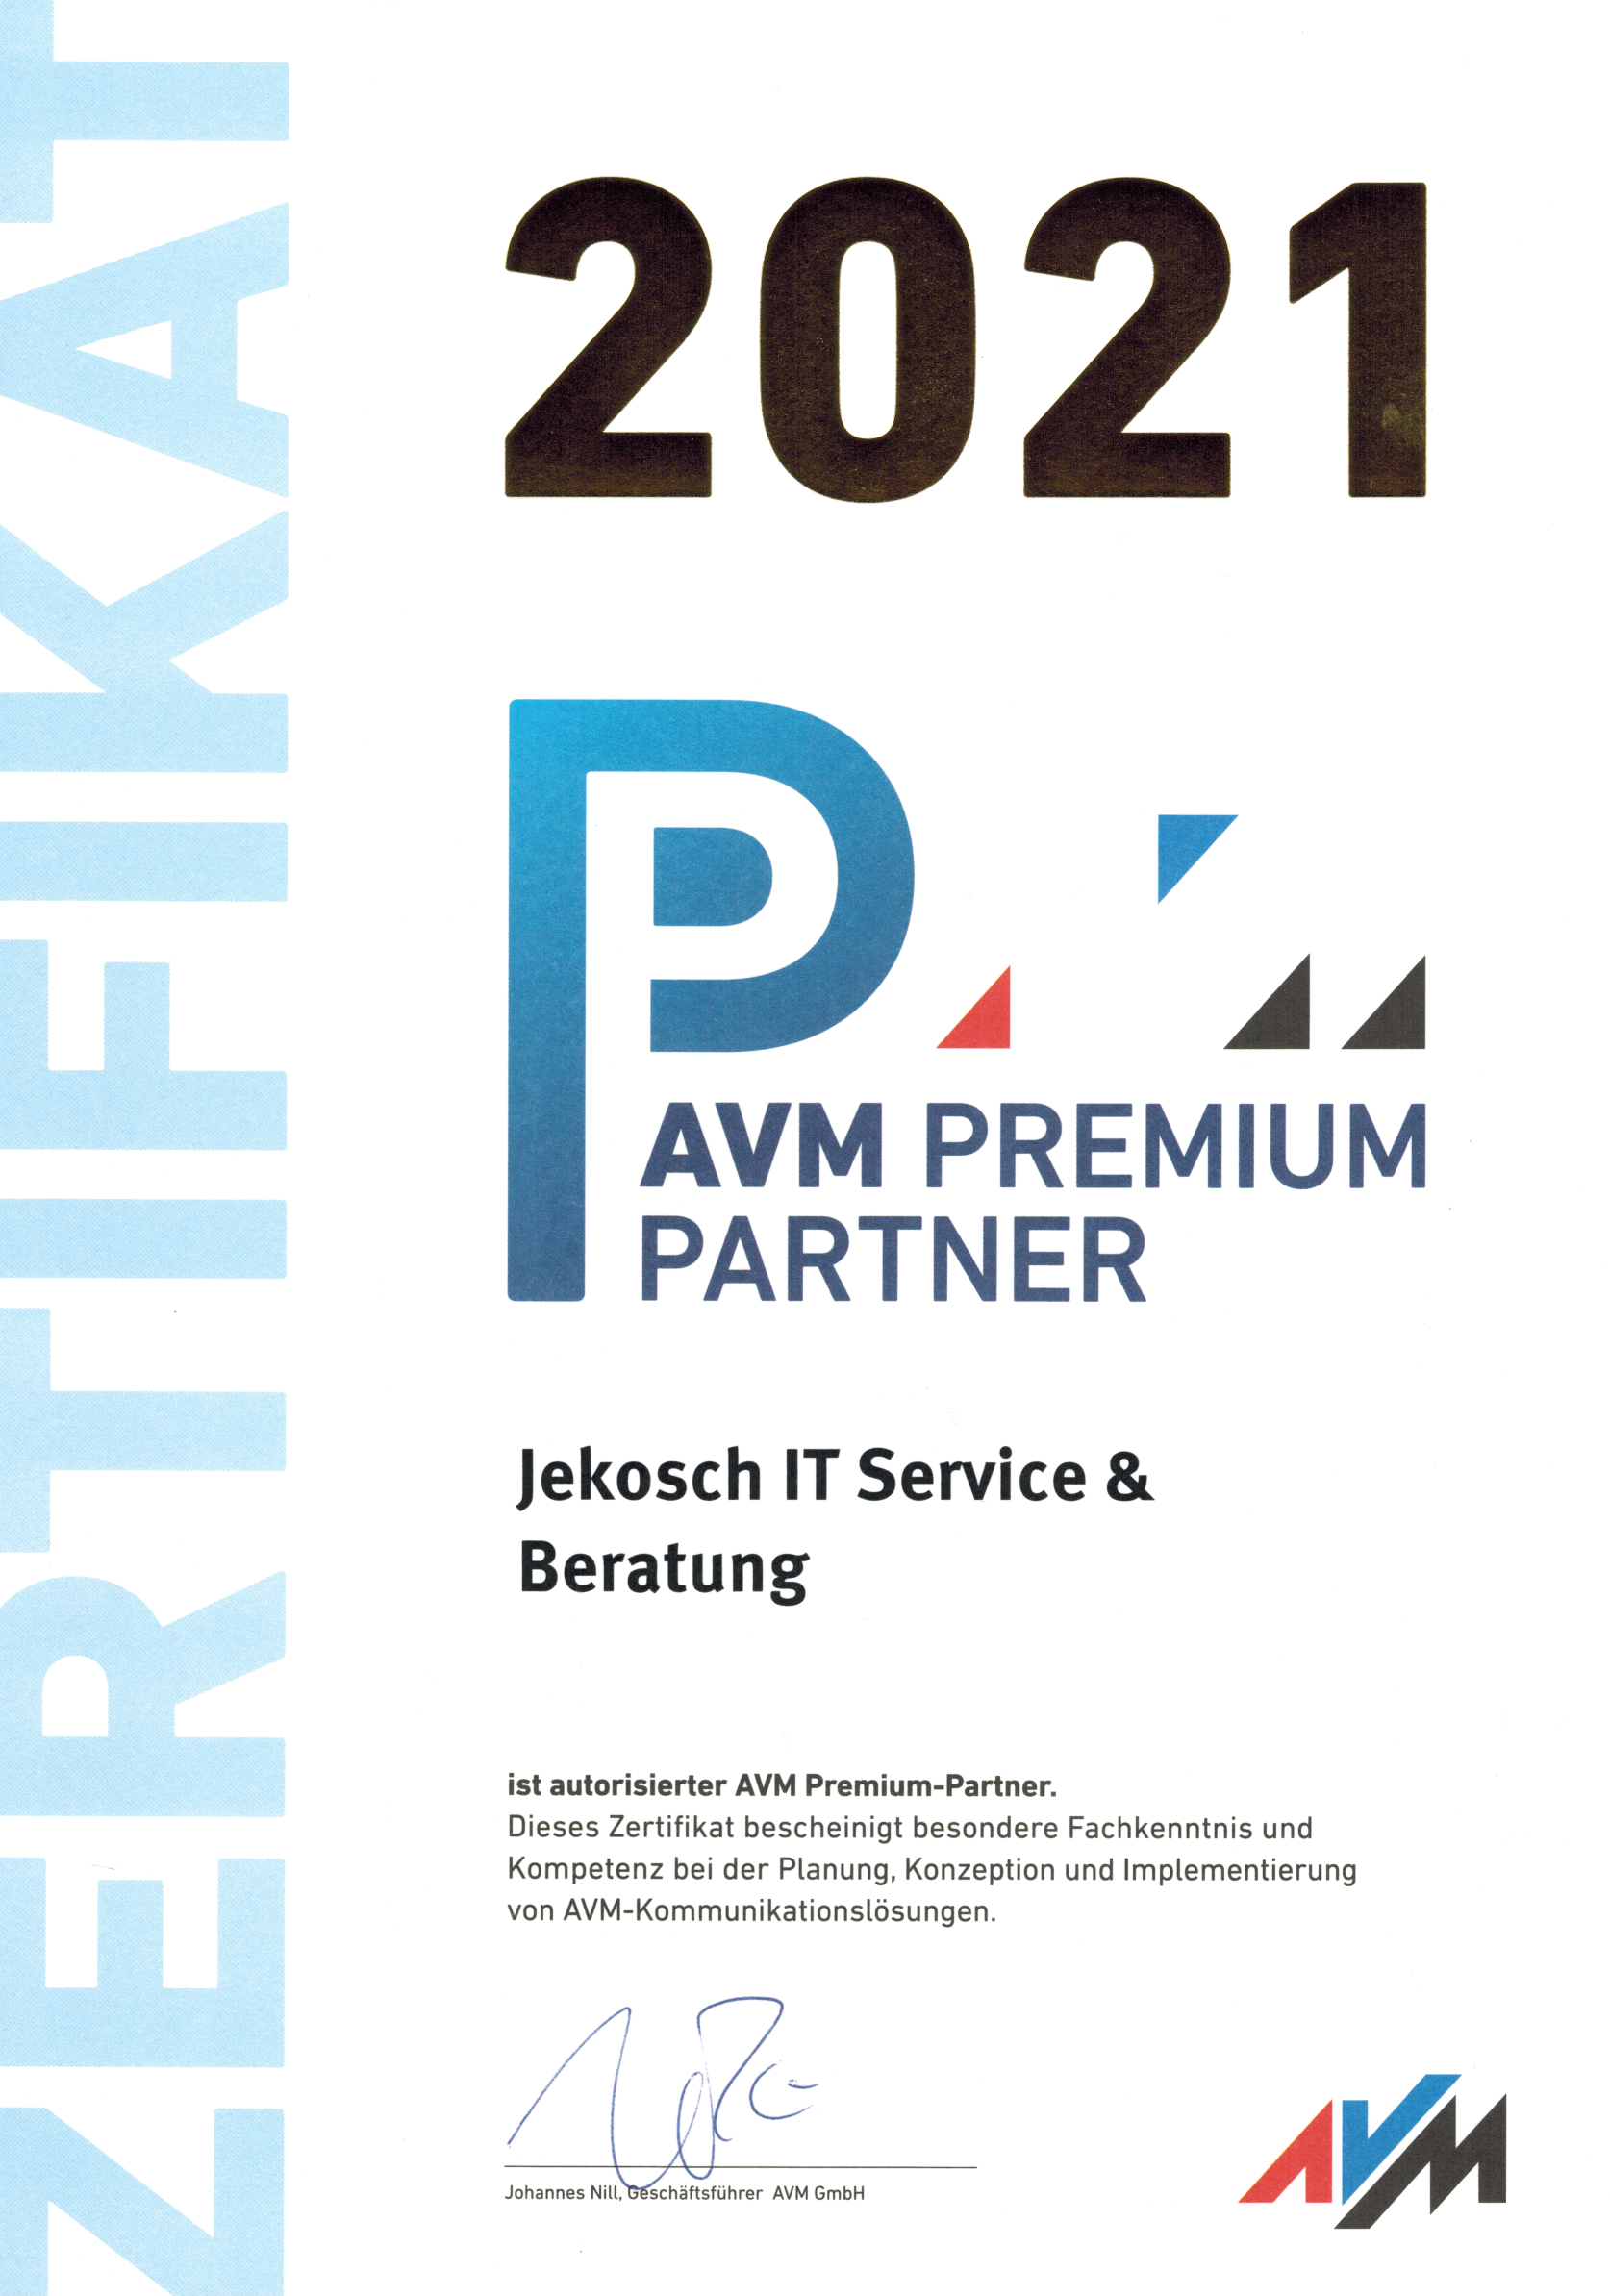 AVM Premiumpartner 2021